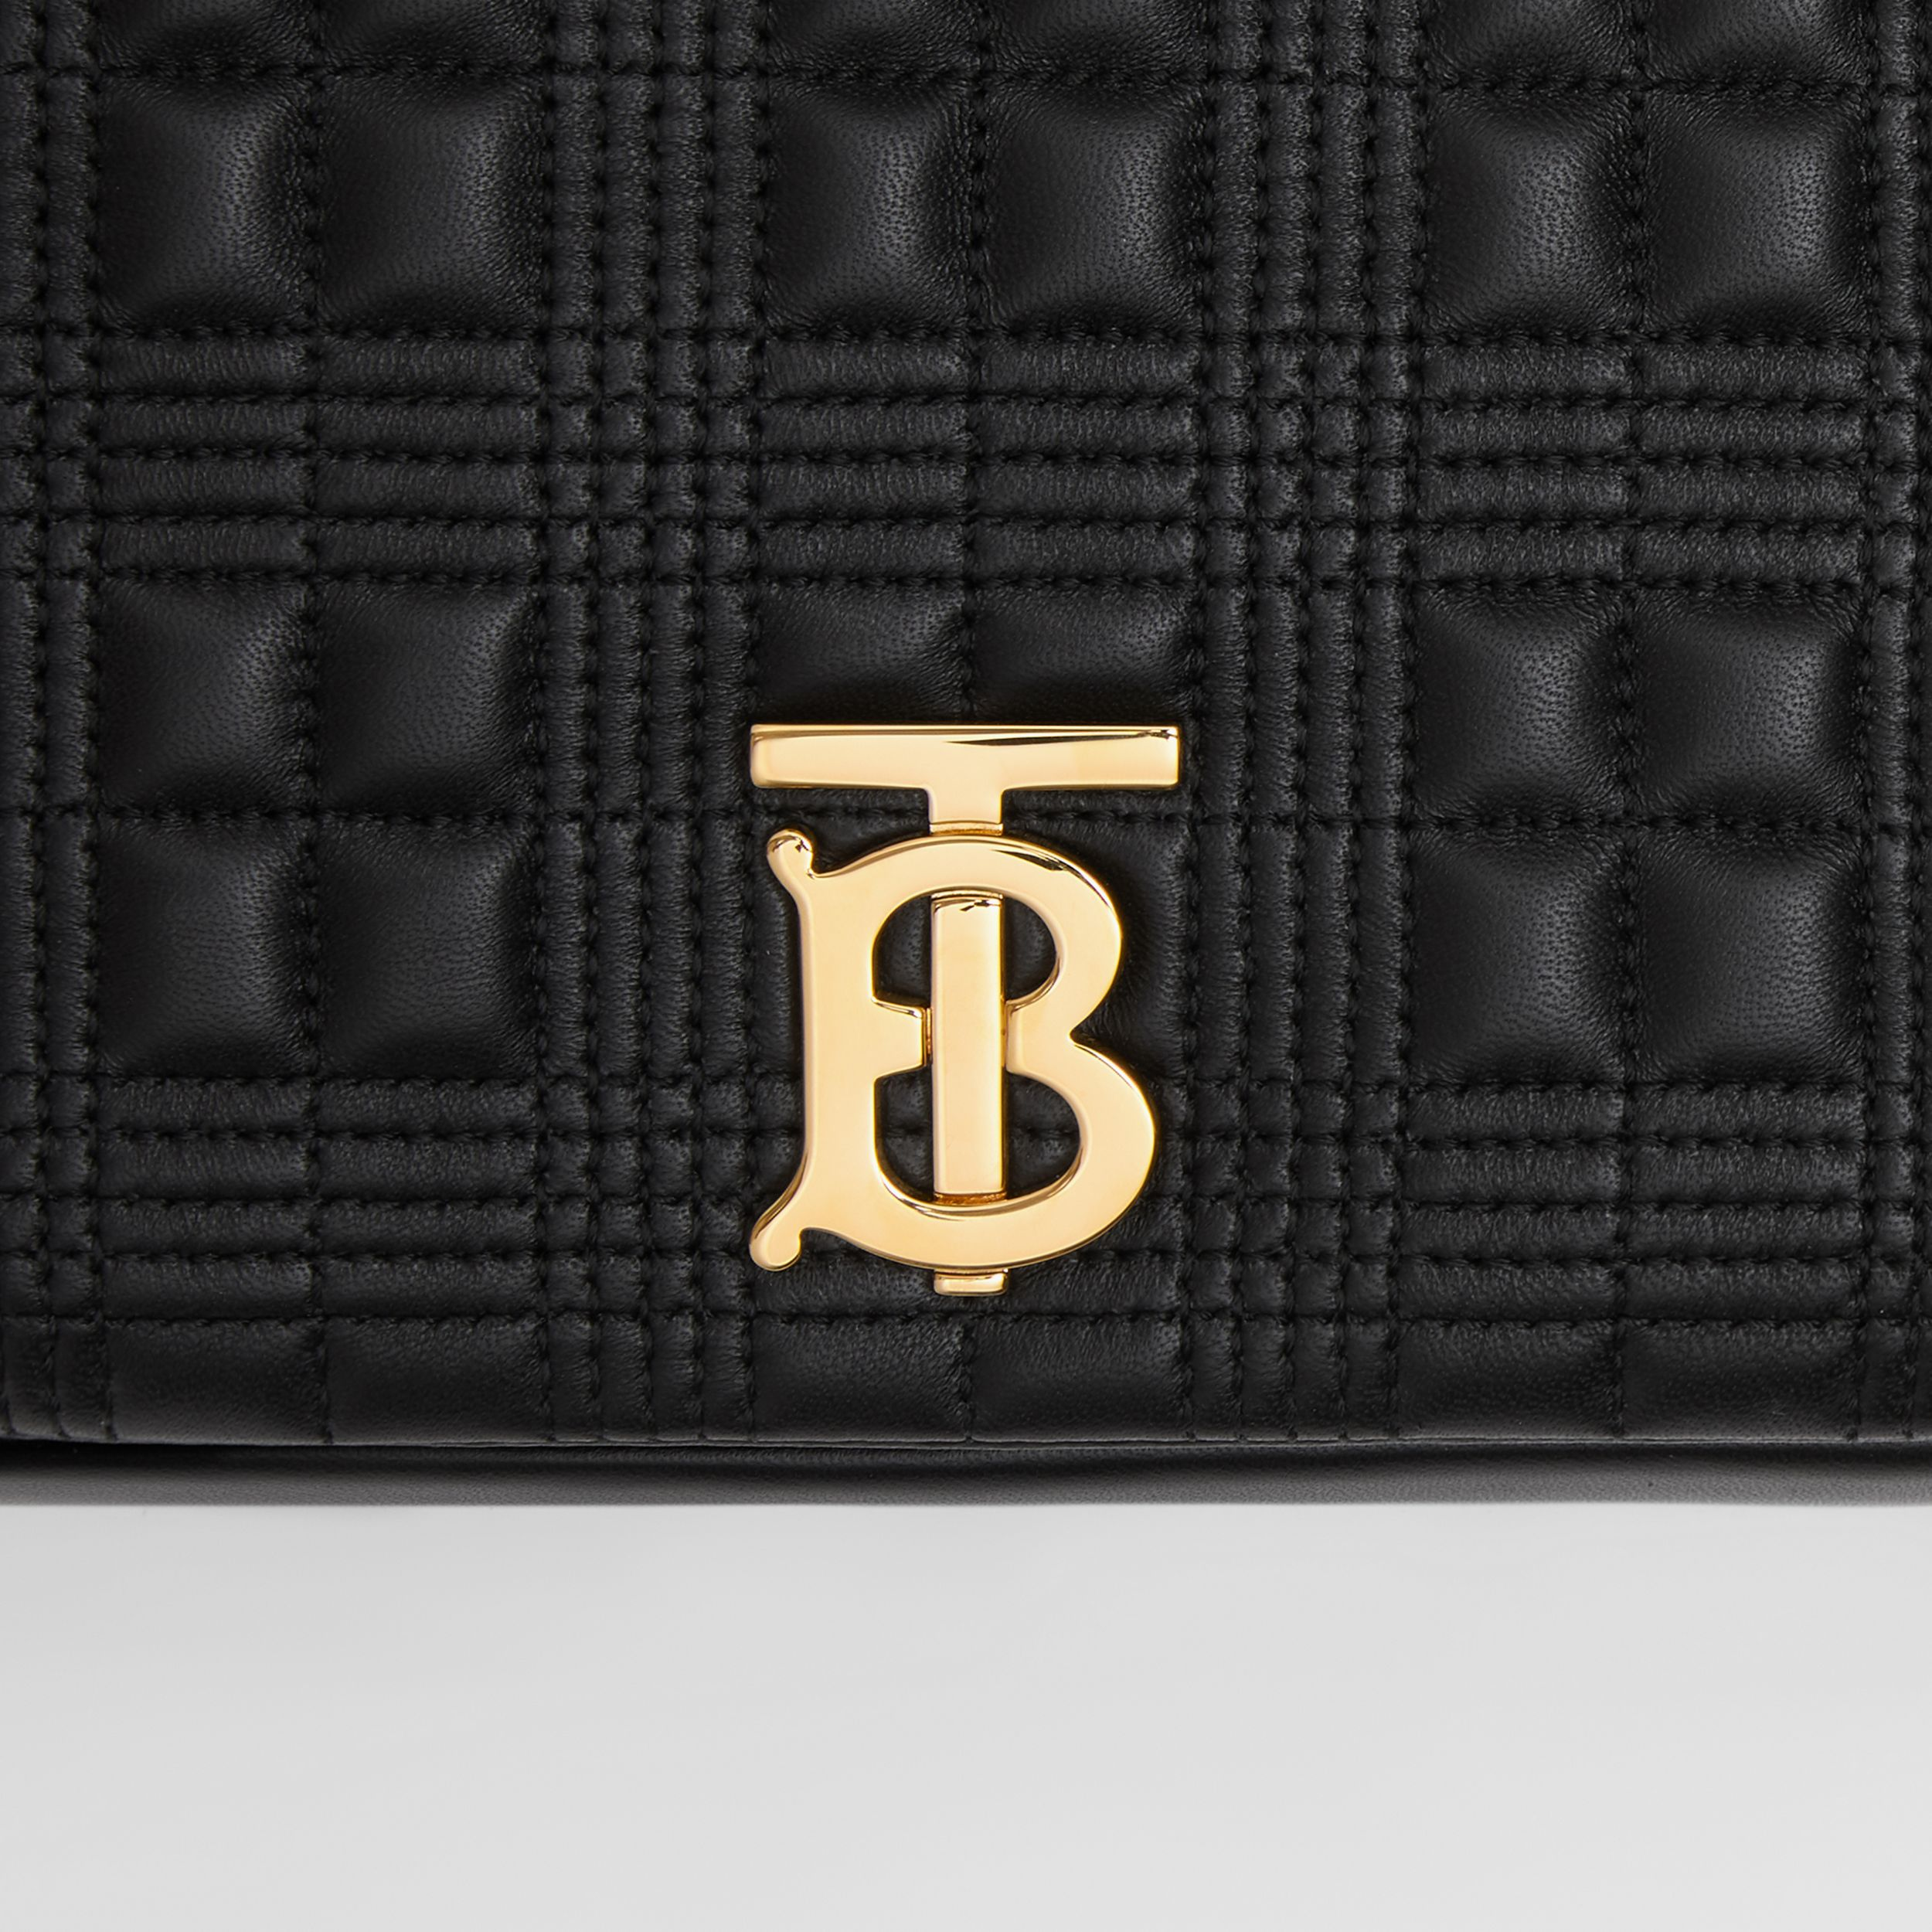 Medium Quilted Lambskin Lola Bag in Black/light Gold - Women | Burberry - 2